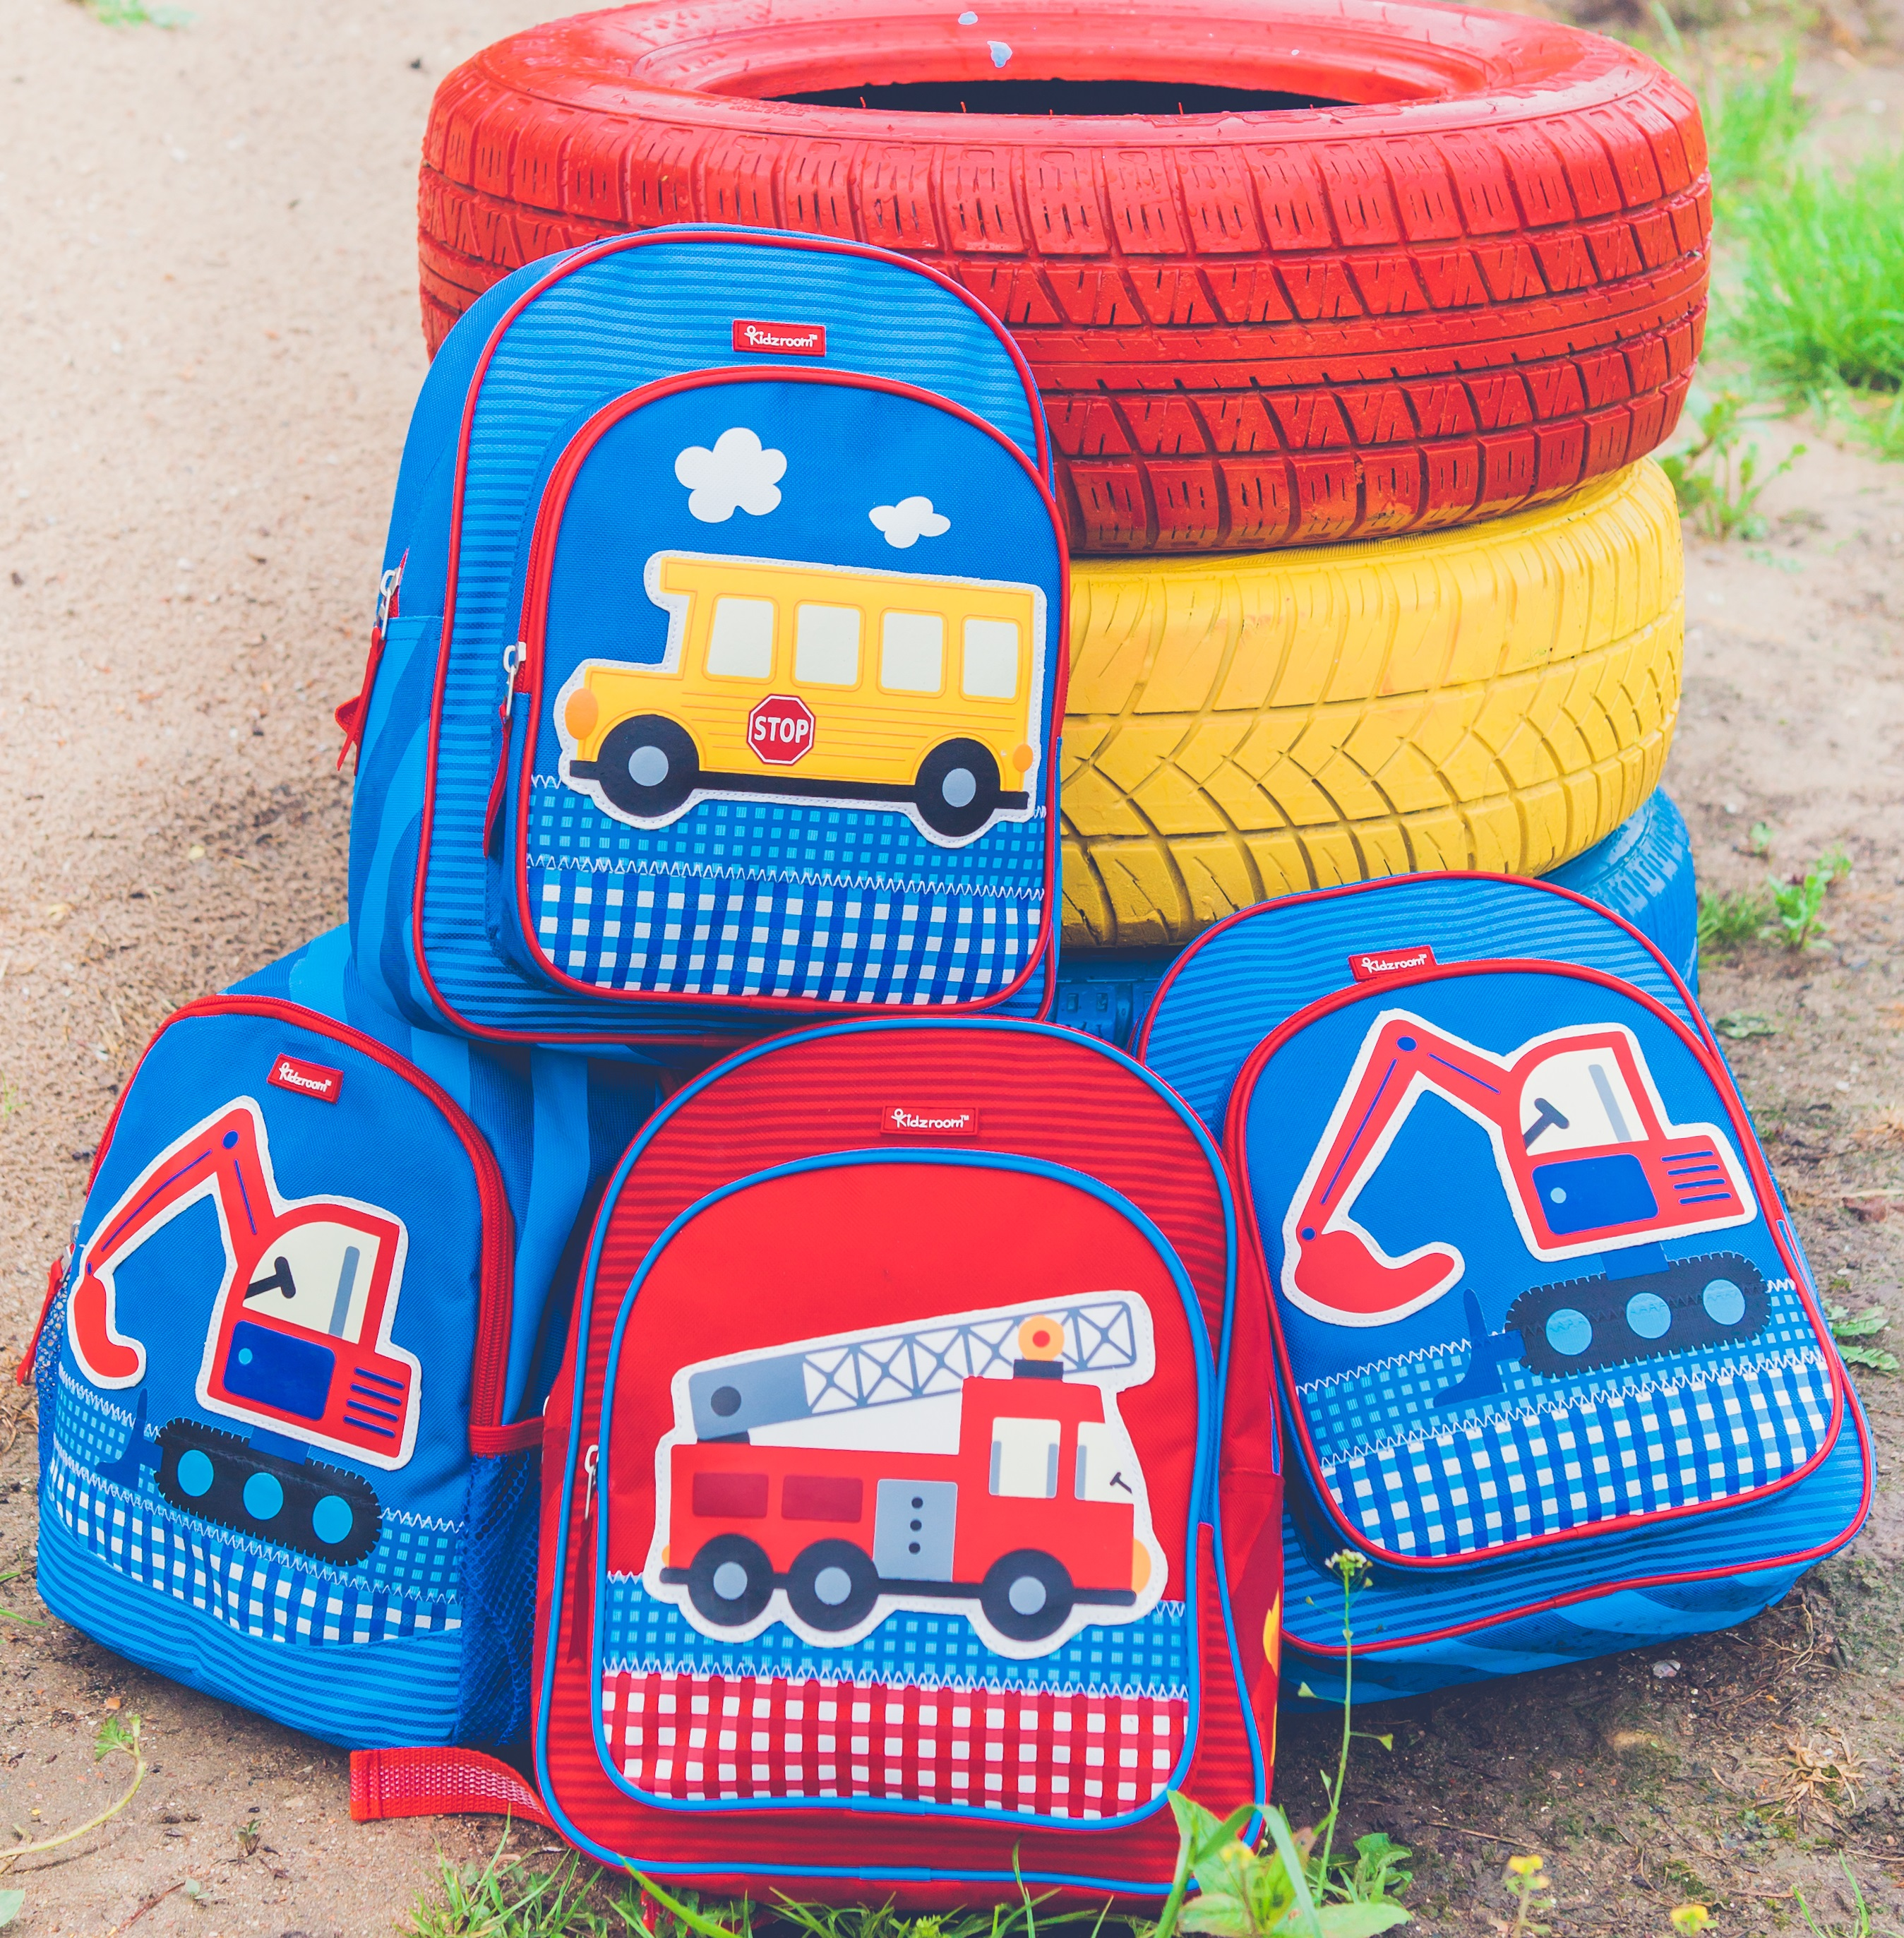 """b02e9396aea ... rugzakje uit de """"Fire fighter What's on mama's mind Kidzroom fire  fighter collectie"""